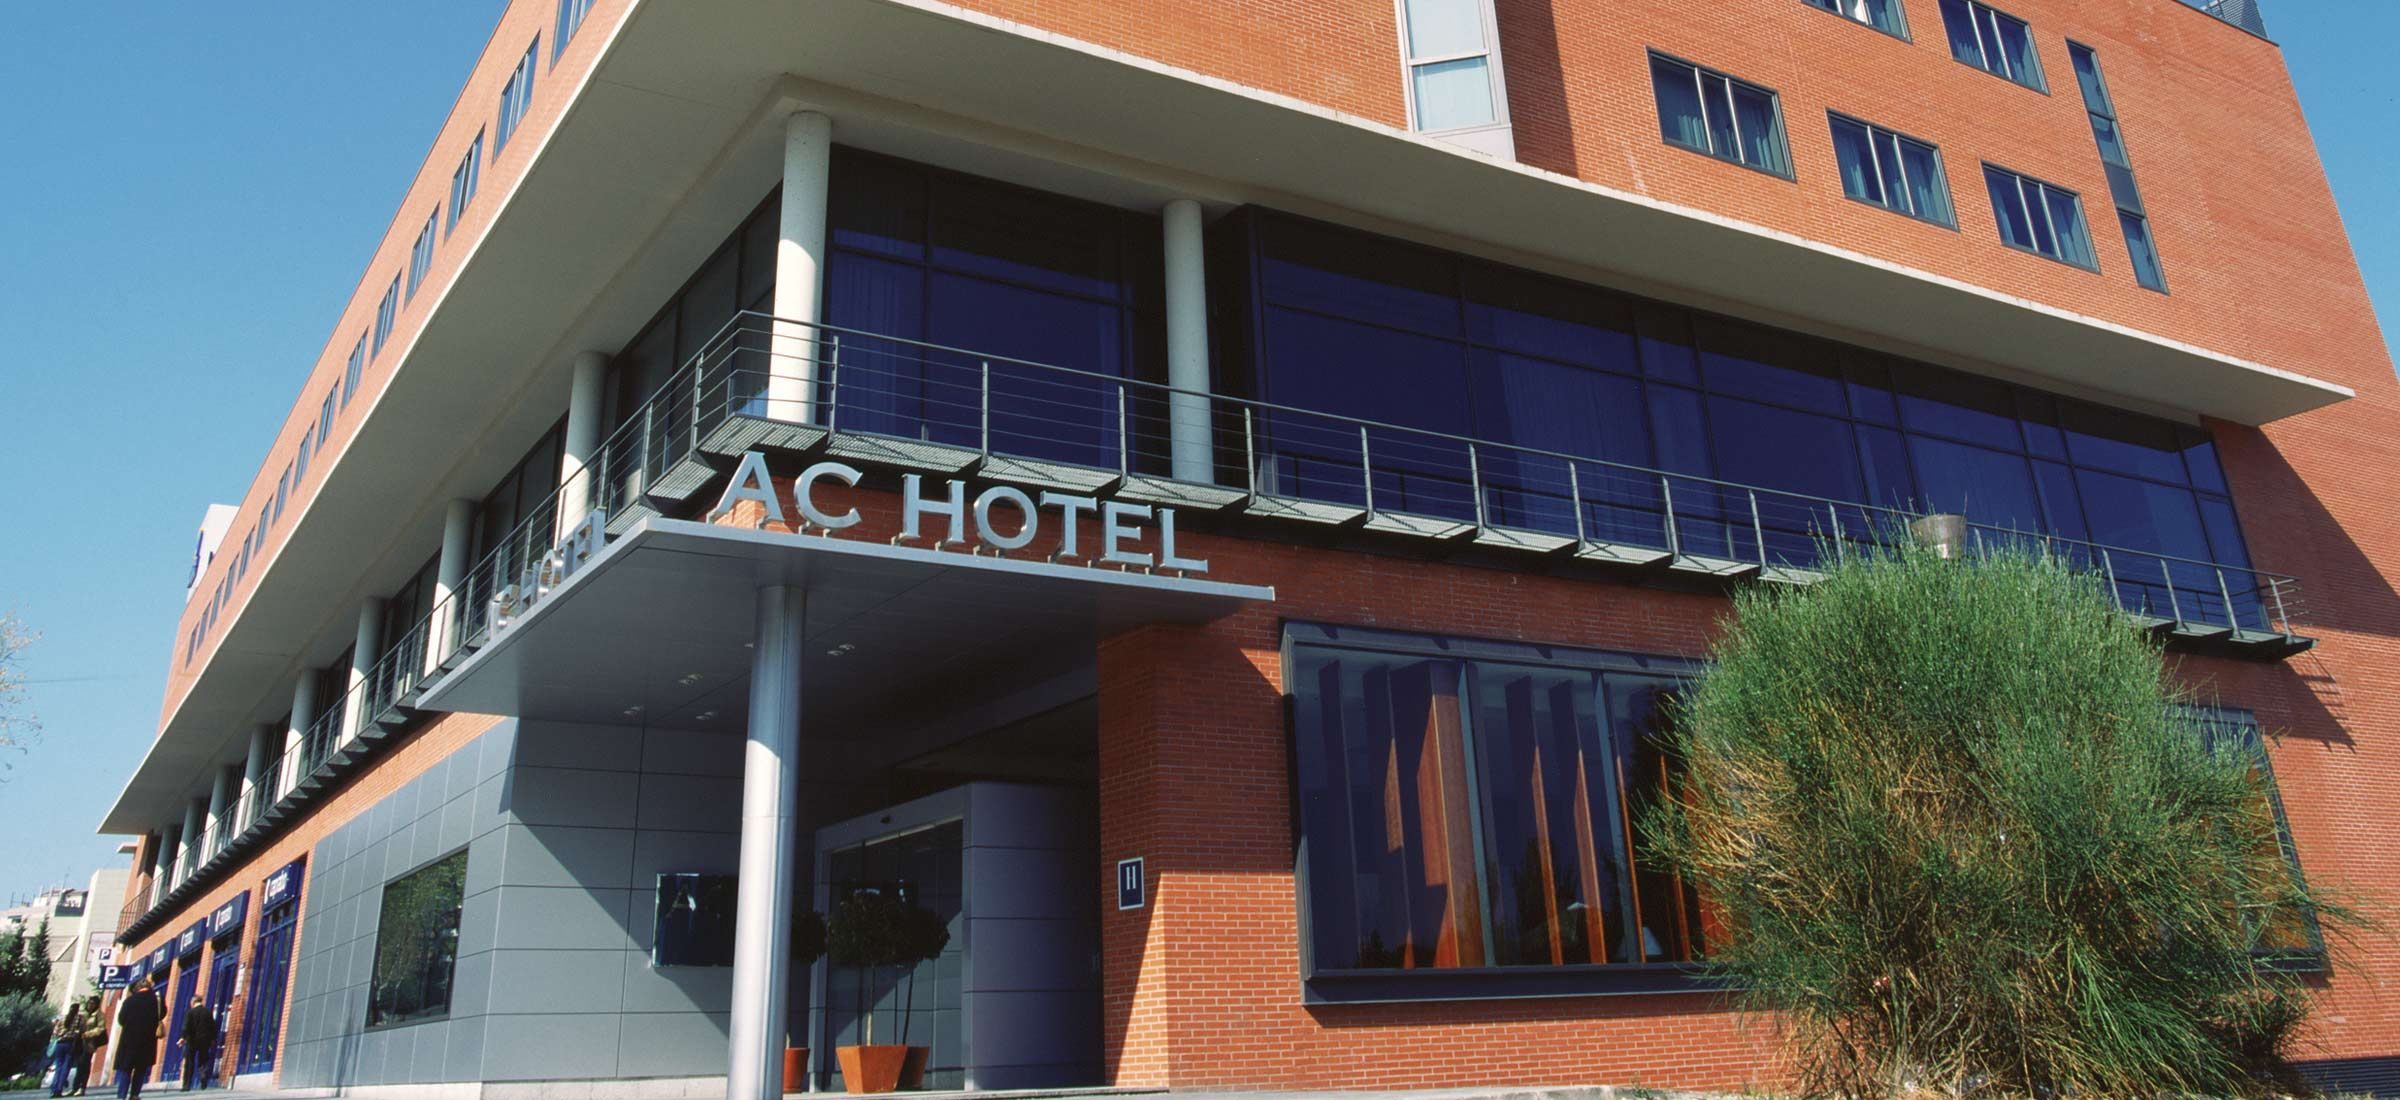 Discover The Stylish Ac Hotel Guadalajara And Experience Full Service Facilities In The Heart Of The City Center That Make It An I Ac Hotel Hotel Destin Hotels